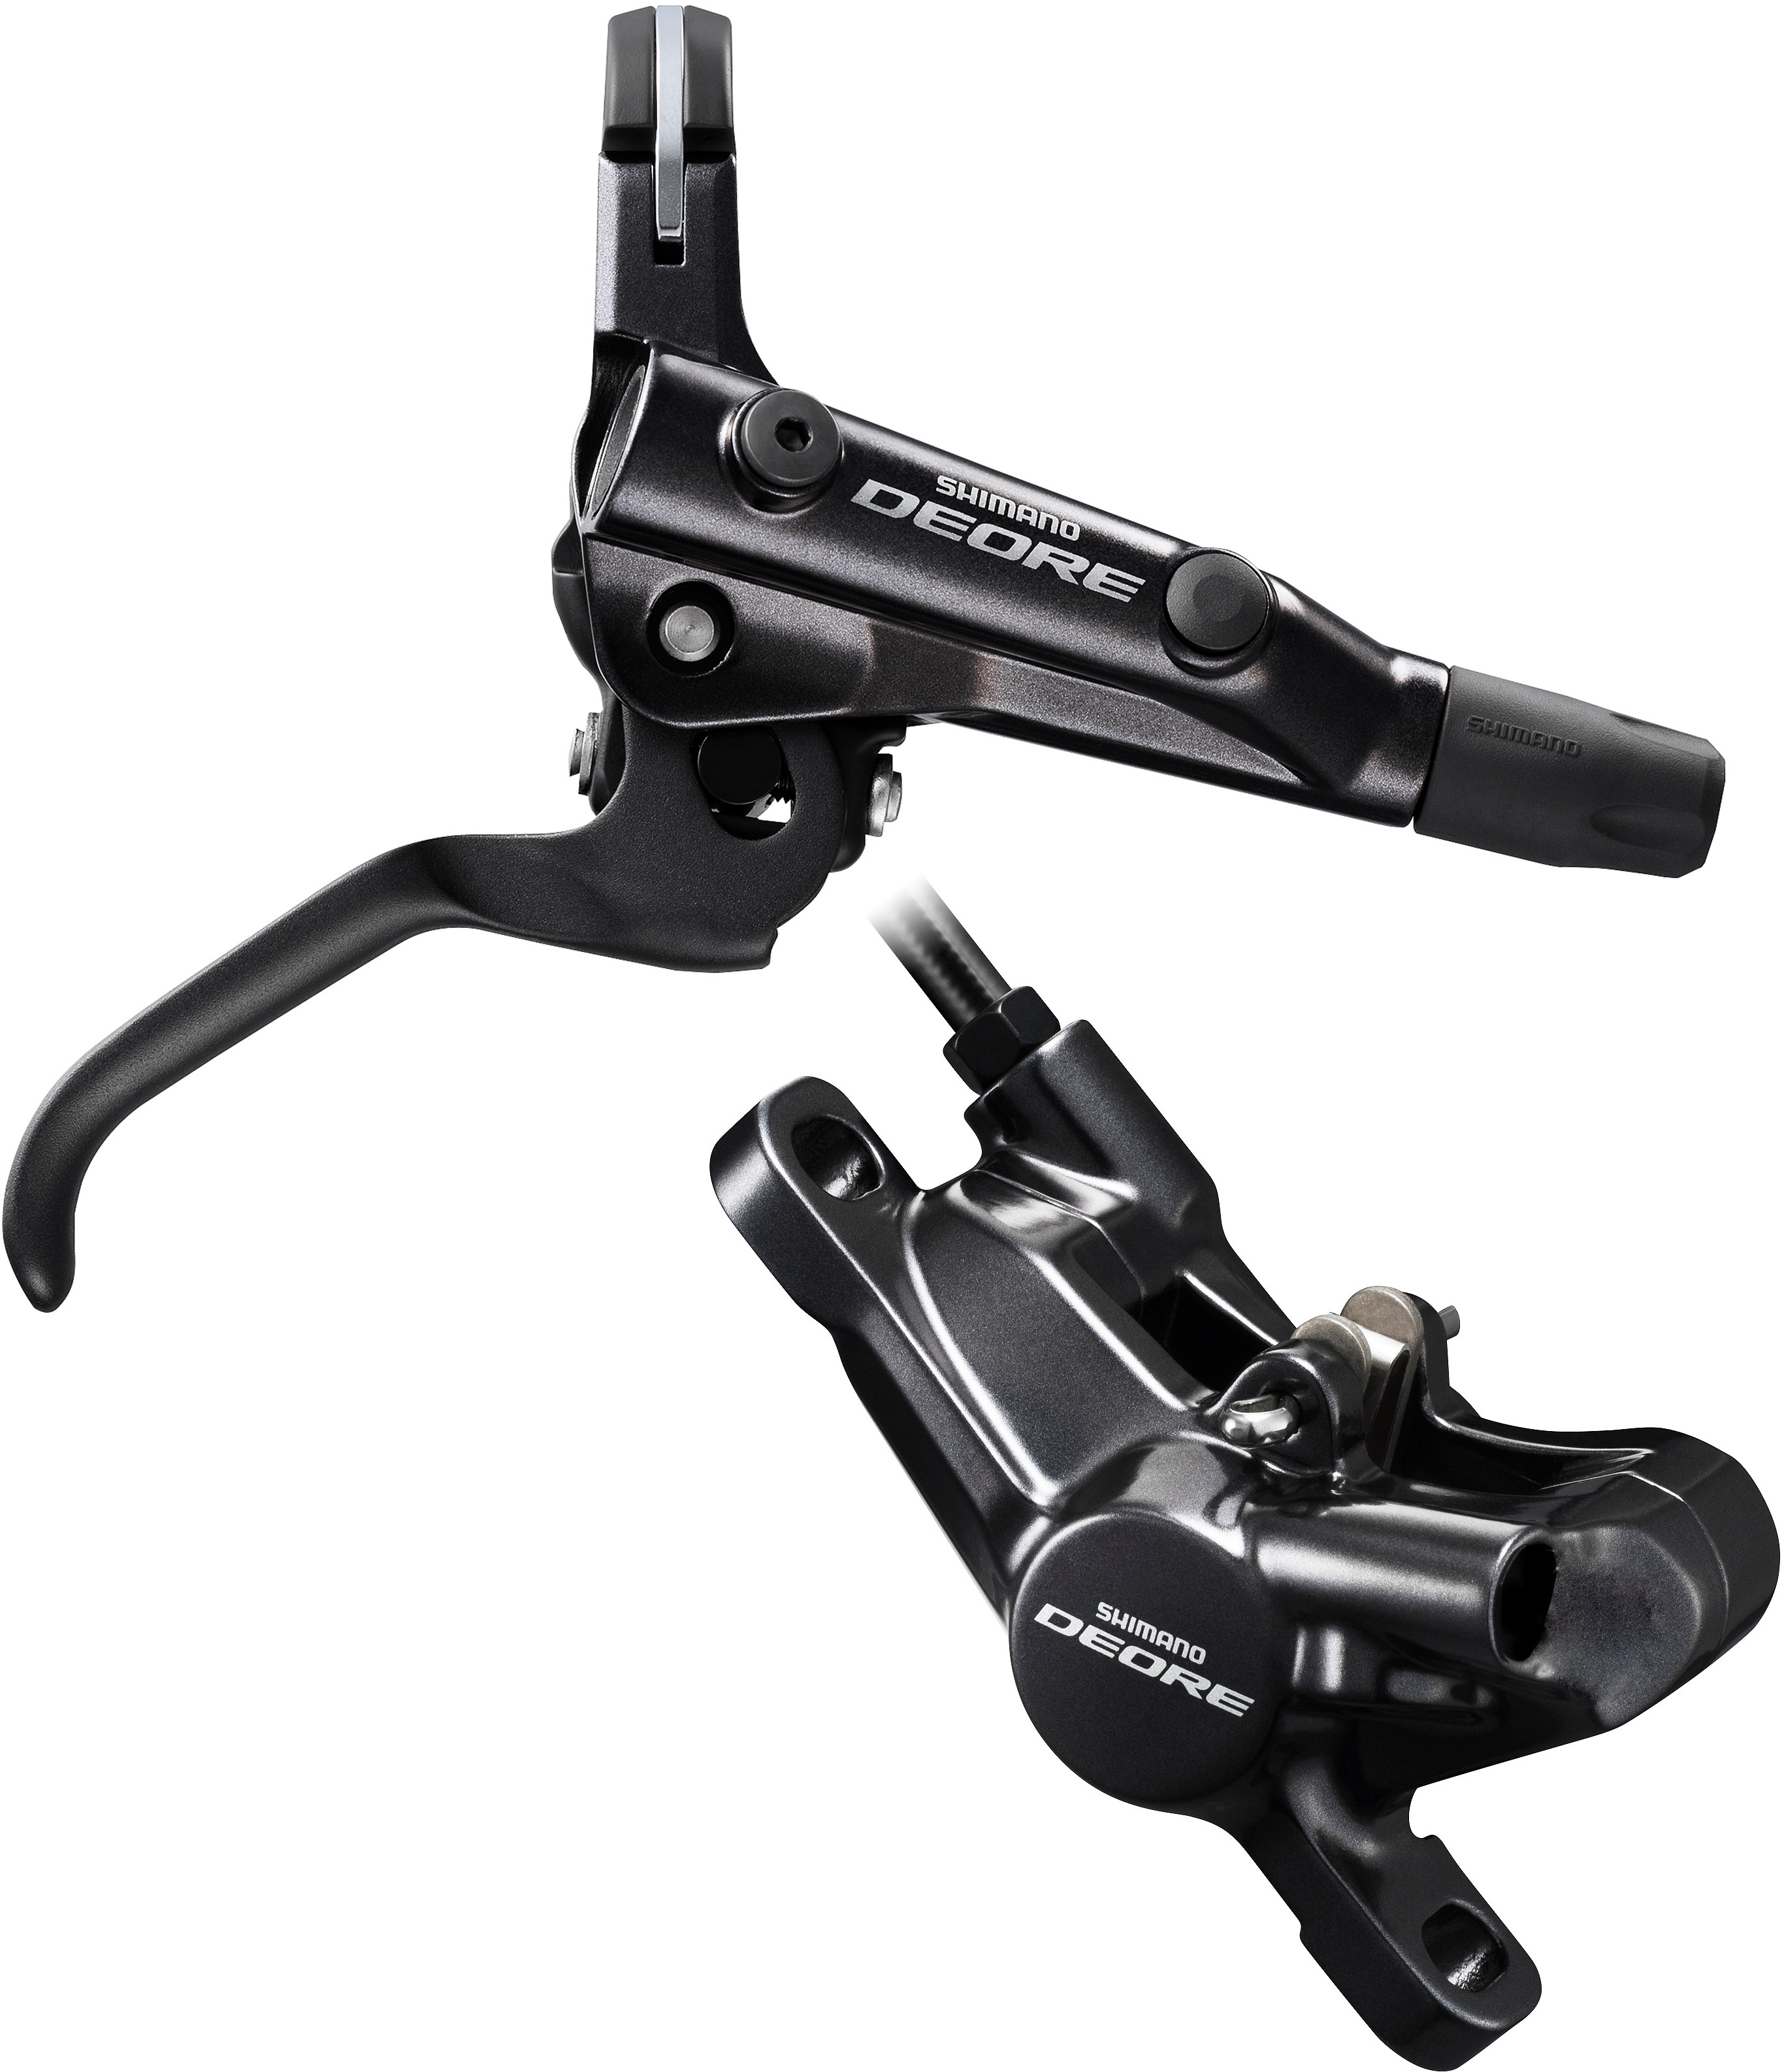 New Shimano Deore M6000 BR-M6000 Mountain Hydraulic Disc Brake Front or Rear